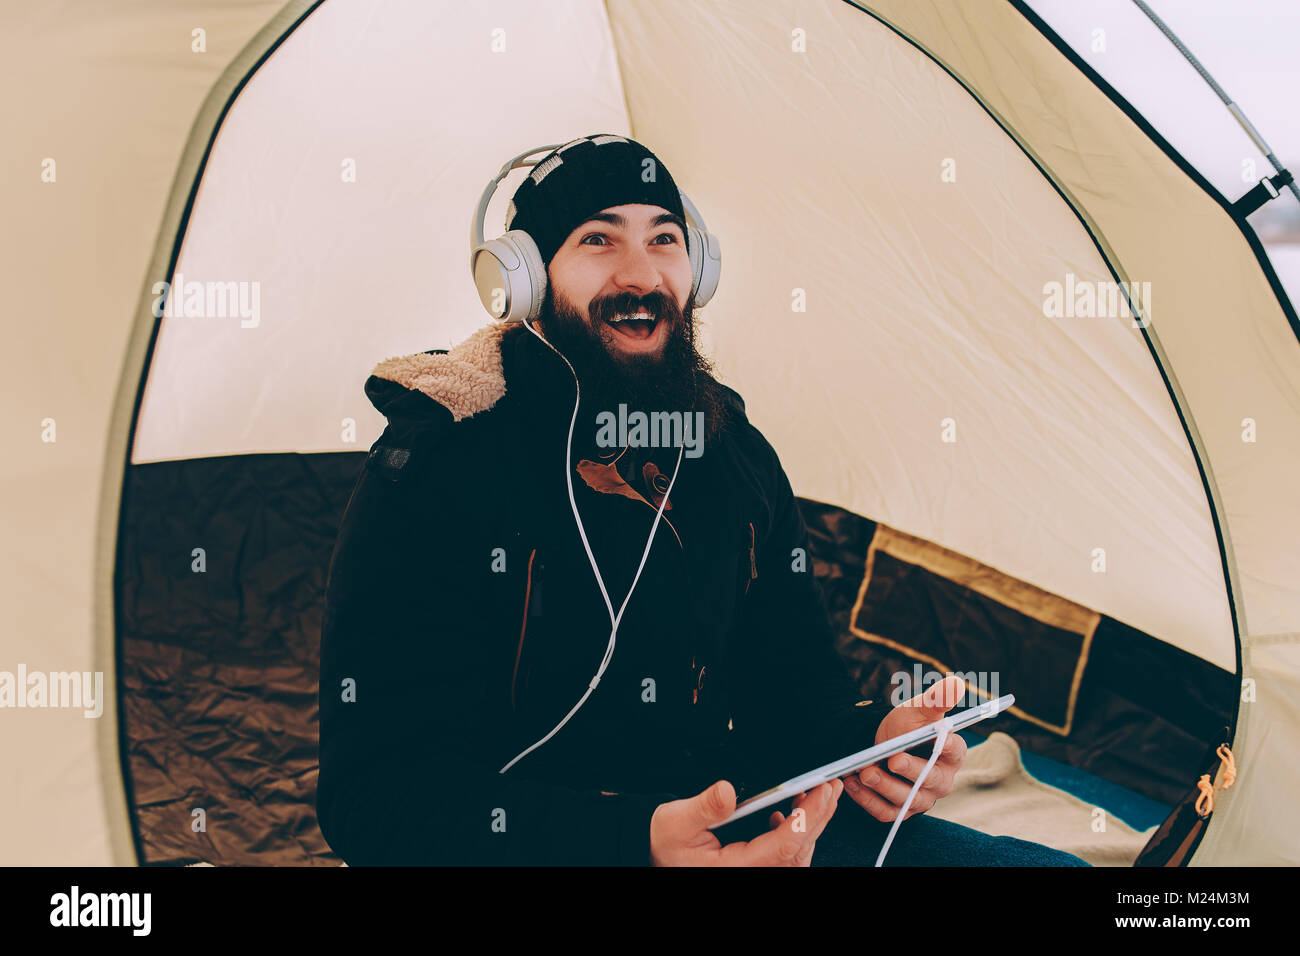 Bearded man with tablet laughing - Stock Image